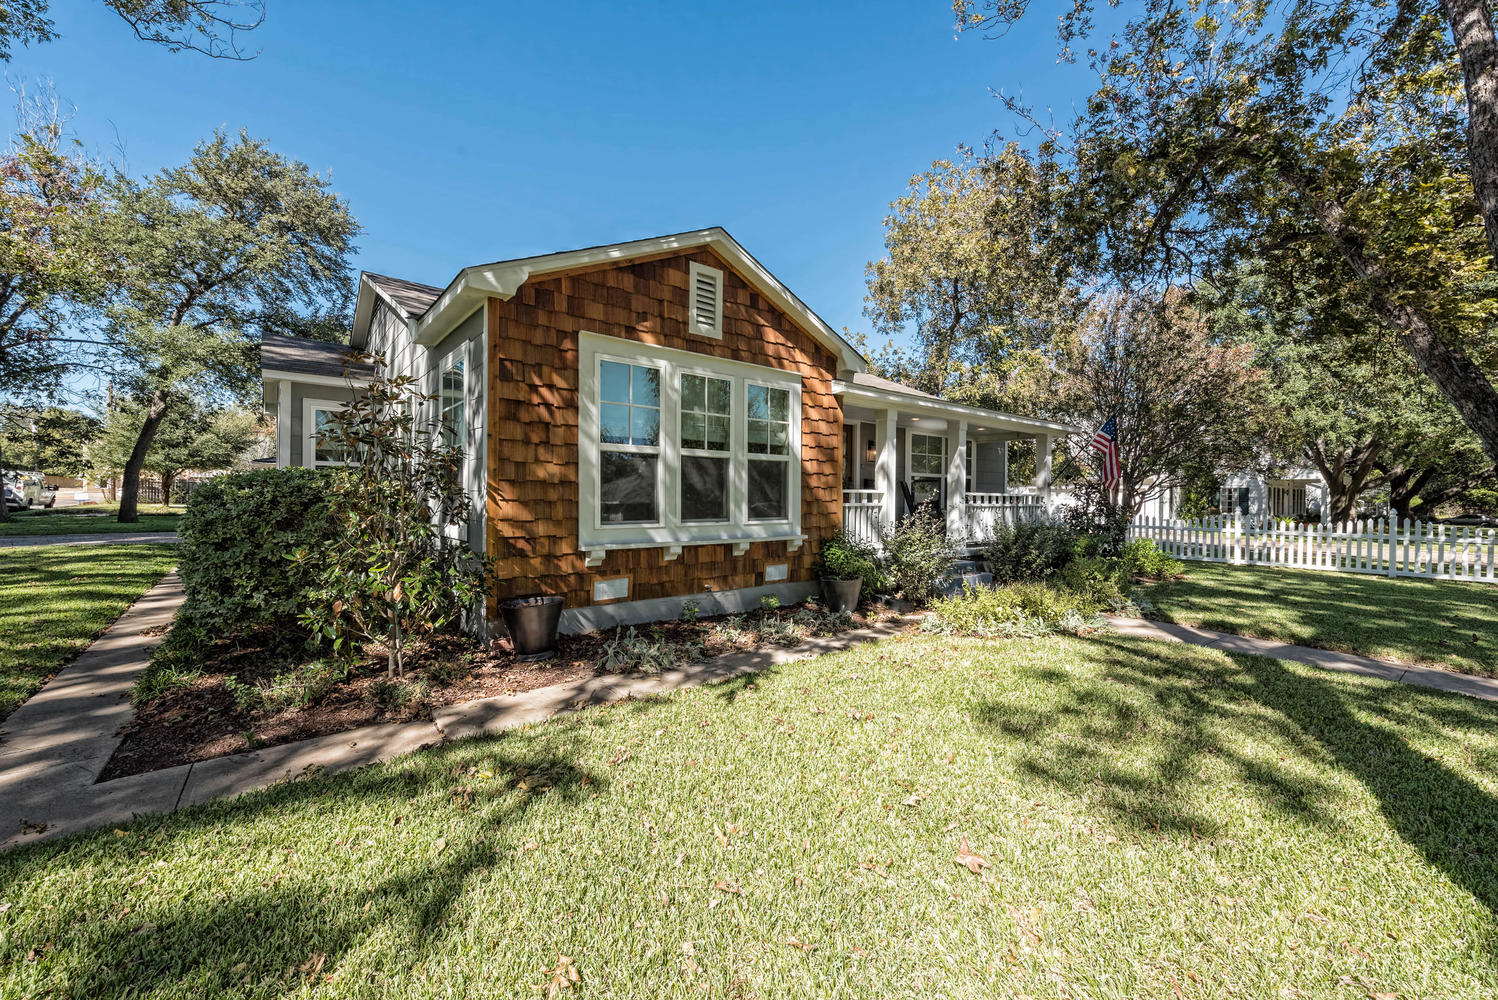 waco home featured on season 5 of 39 fixer upper 39 is now for sale by owner houston chronicle. Black Bedroom Furniture Sets. Home Design Ideas